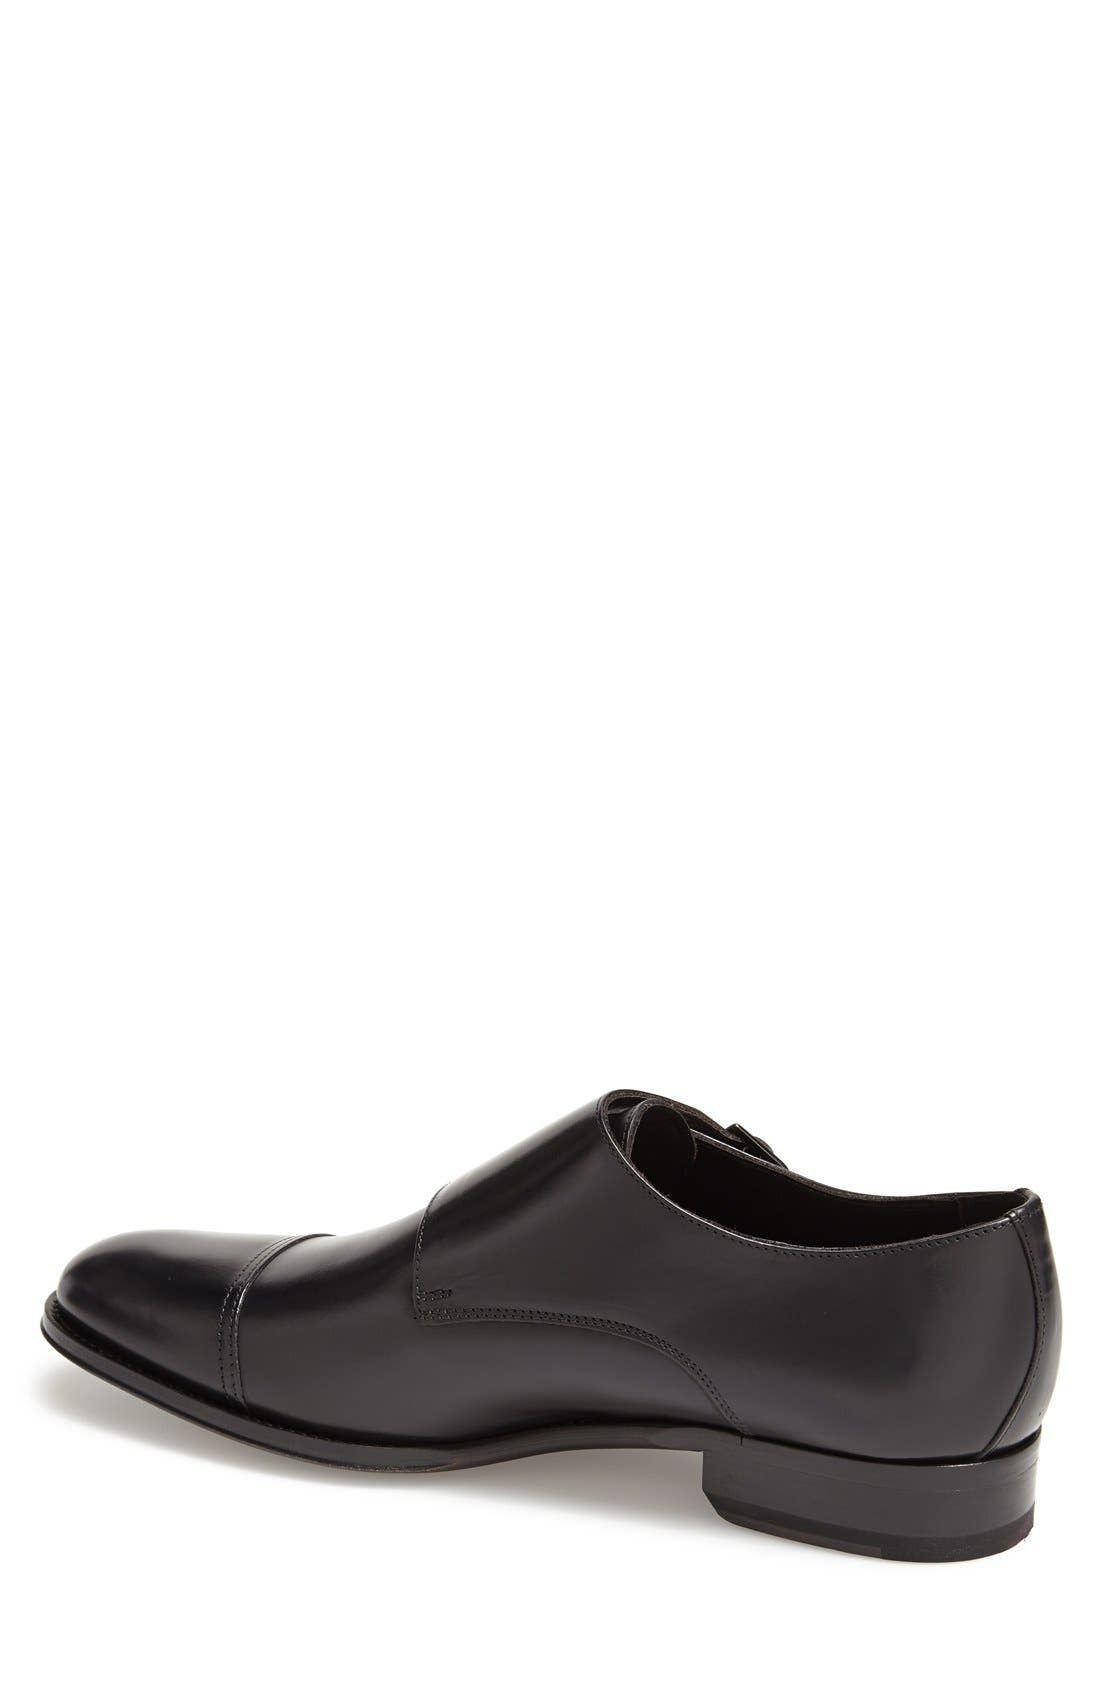 Alternate Image 2  - To Boot New York 'Medford' Double Monk Strap Shoe (Men)